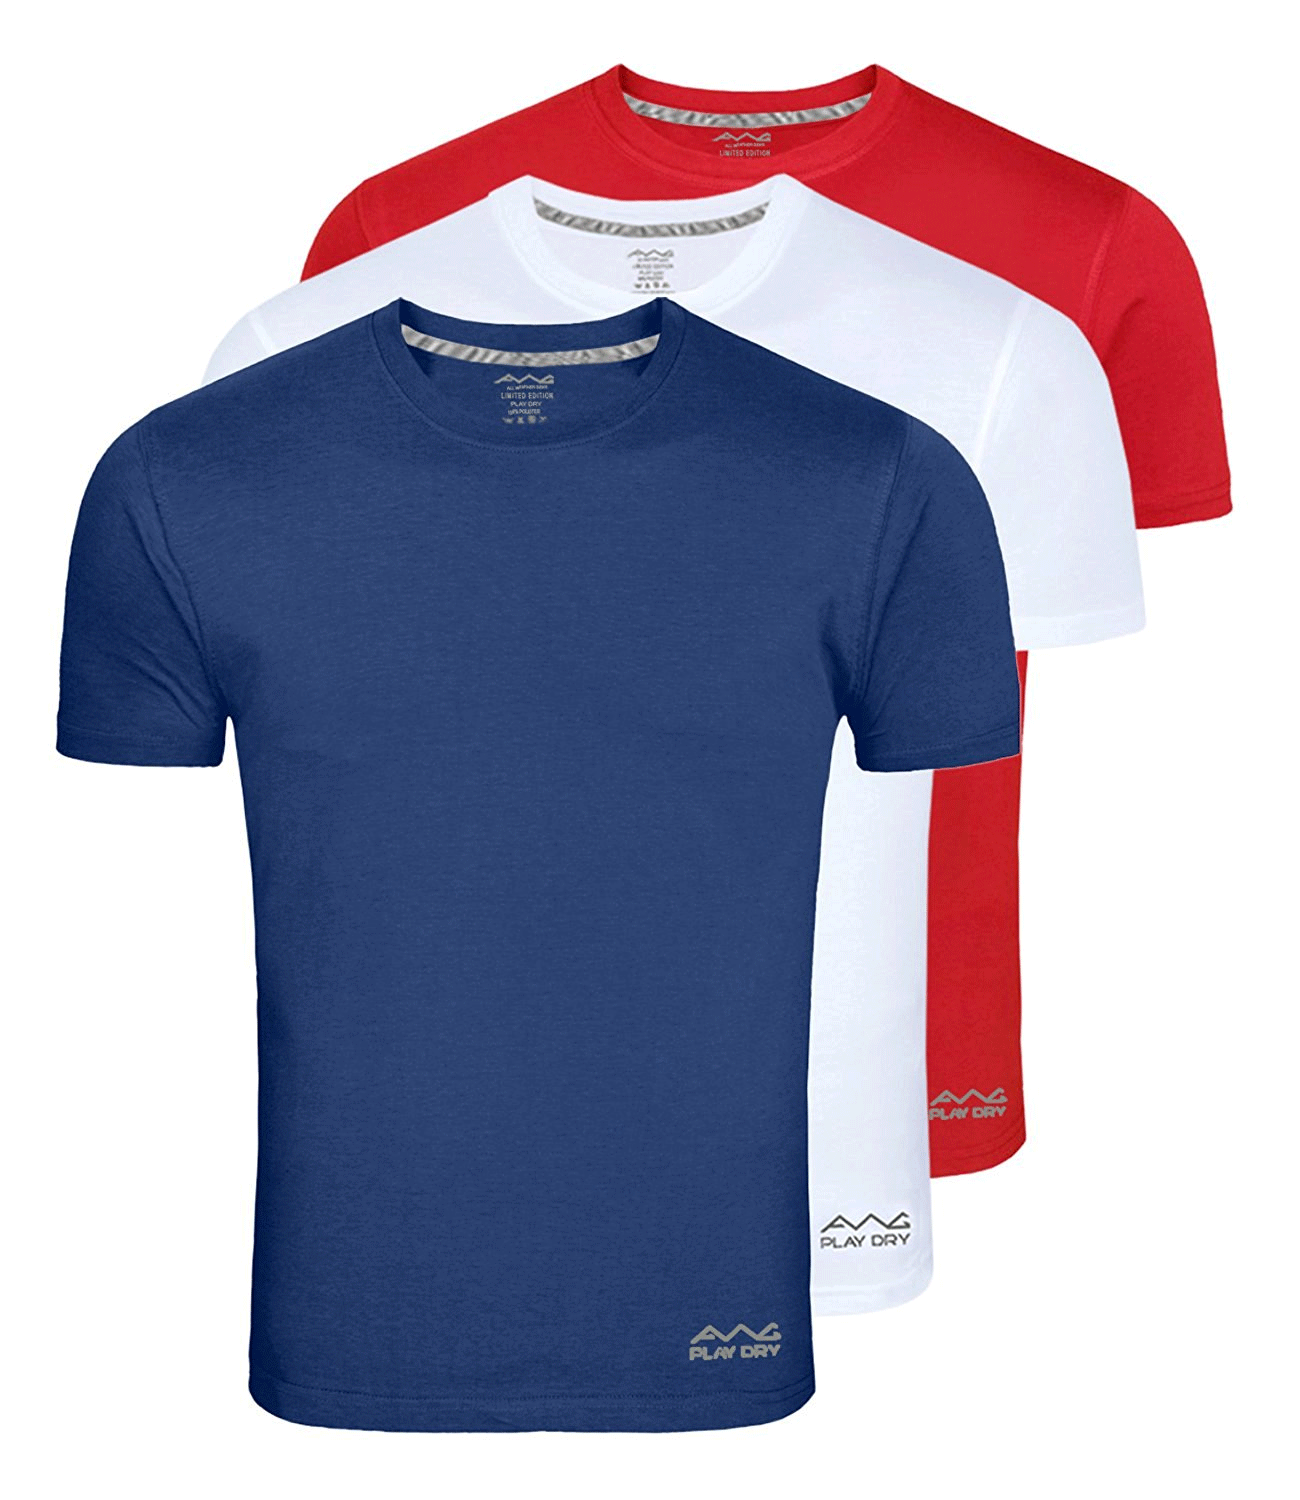 100ANB AWG (150 GSM) Drifit Performance Sports Round Neck T-shirt Red